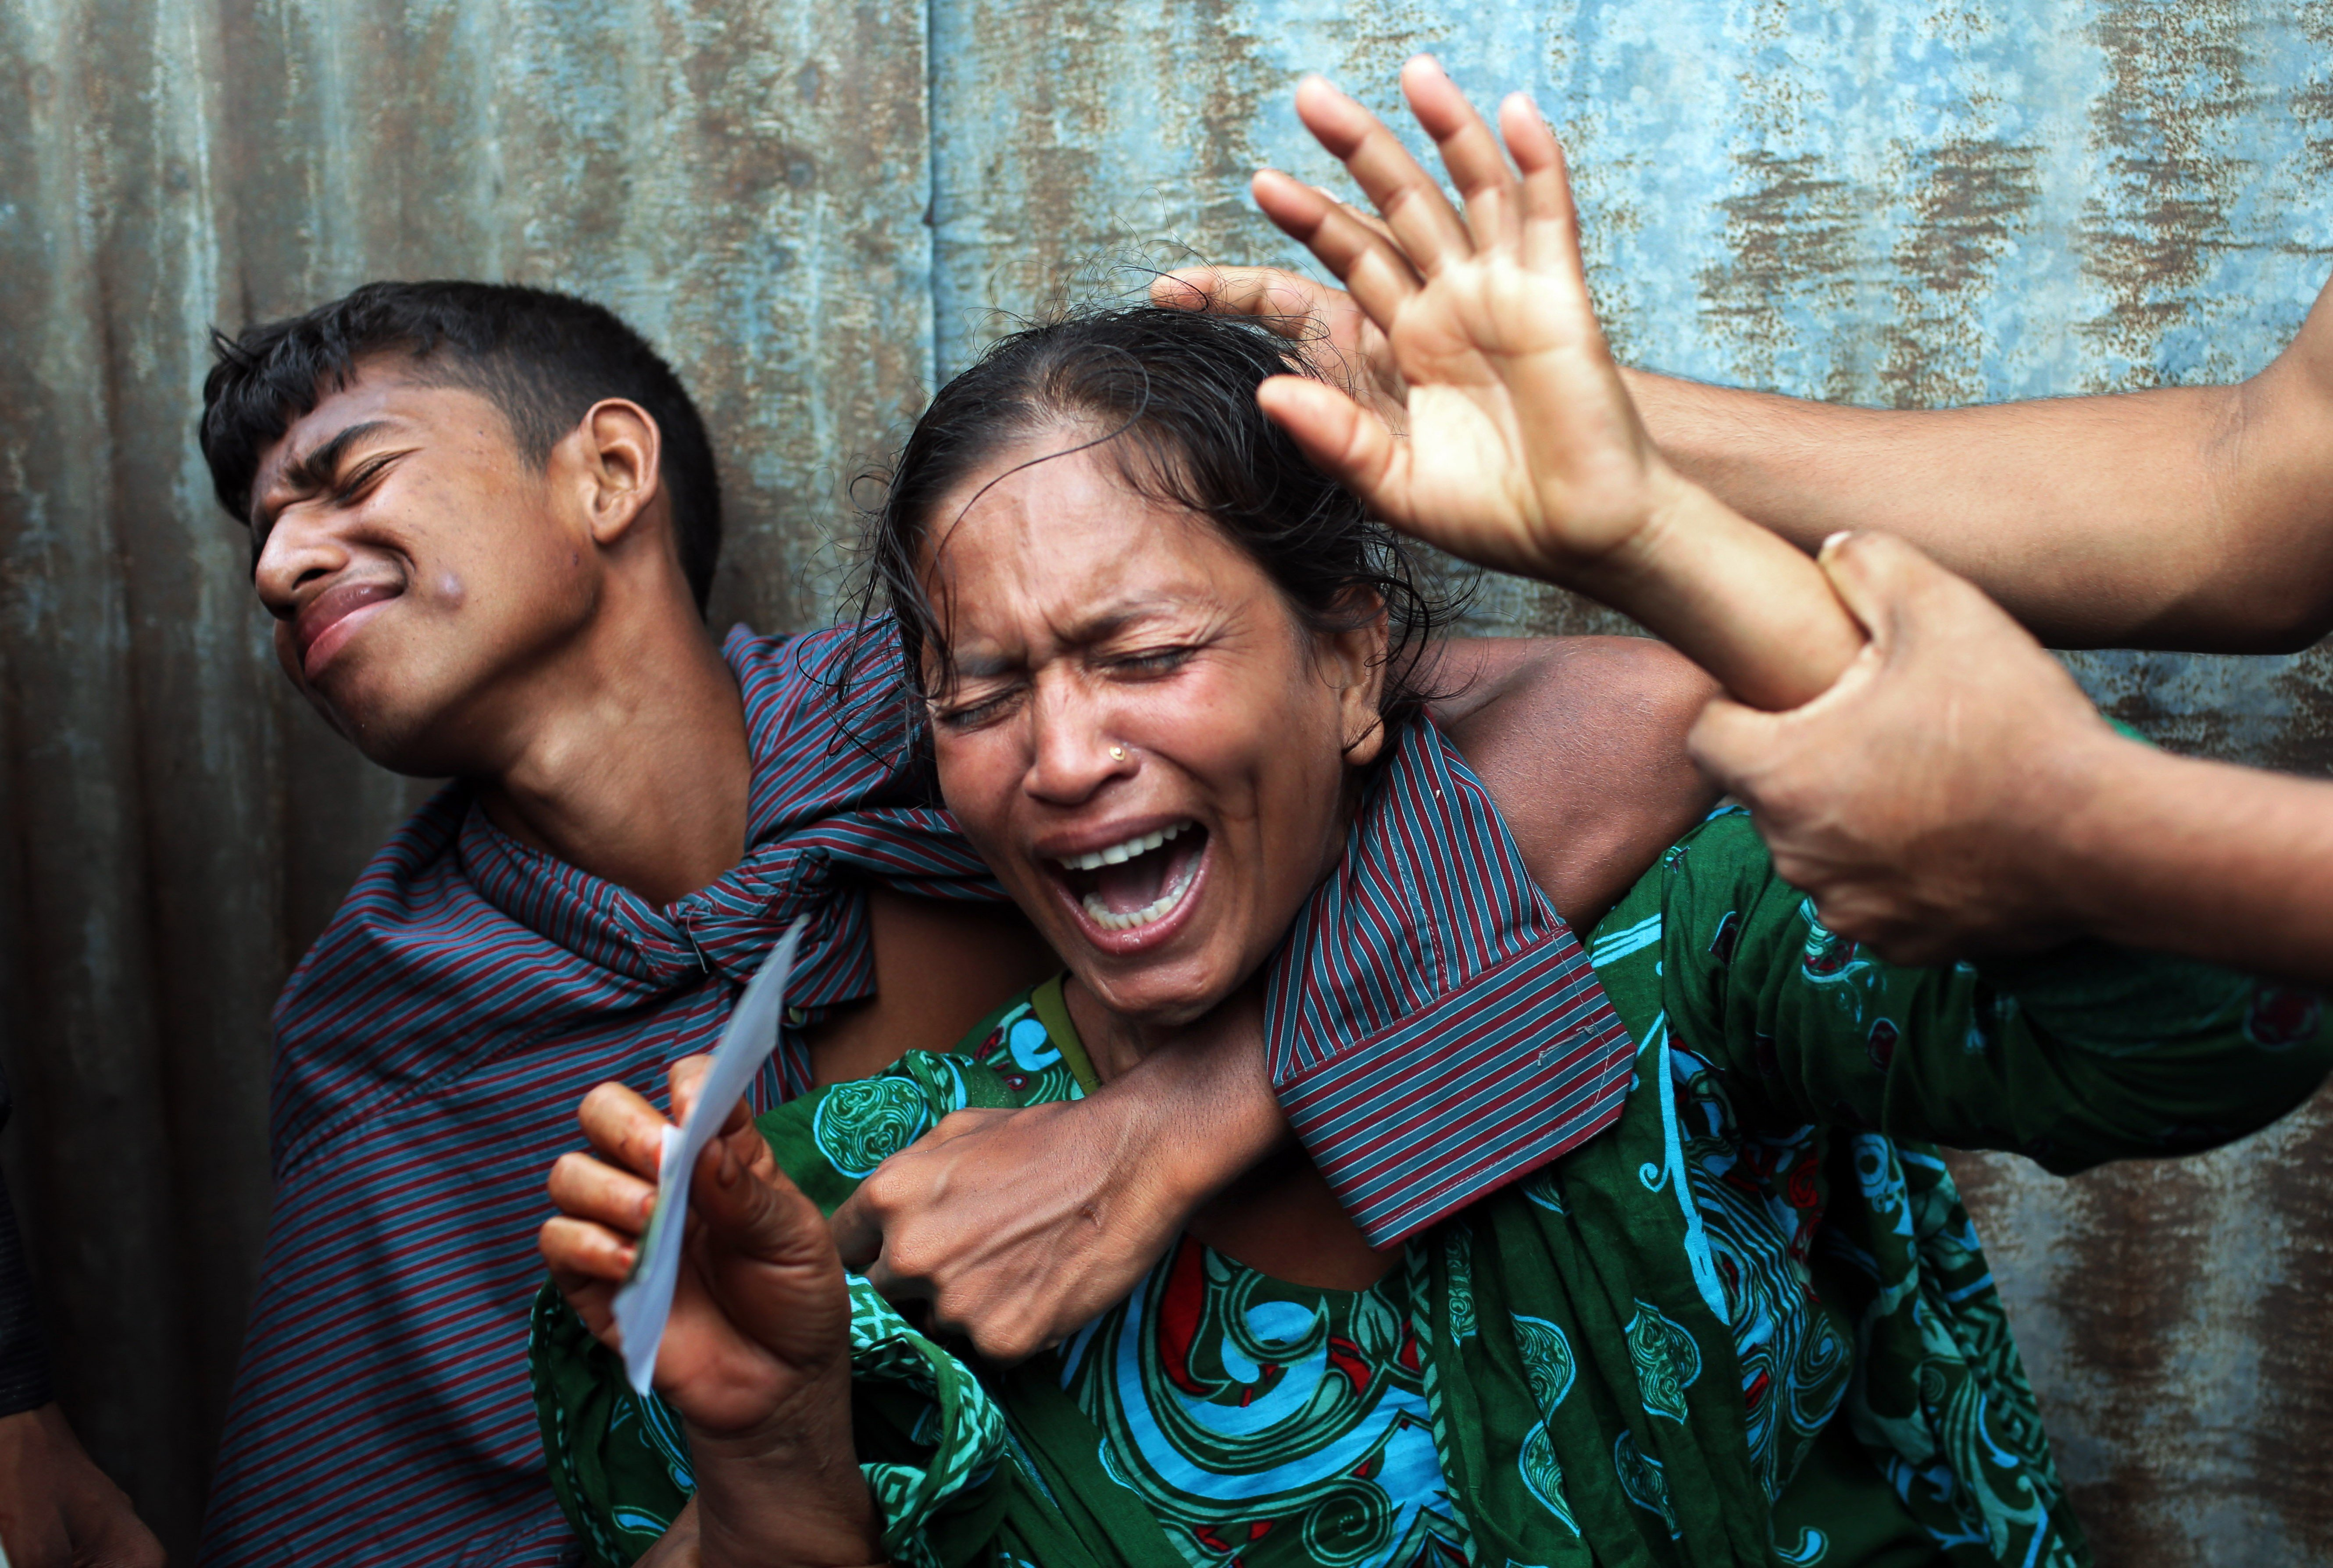 Aug. 4, 2014. Bangladeshi woman Munni, whose daughters are missing, cries as rescuers search the River Padma after a passenger ferry capsized in Munshiganj district, Bangladesh.